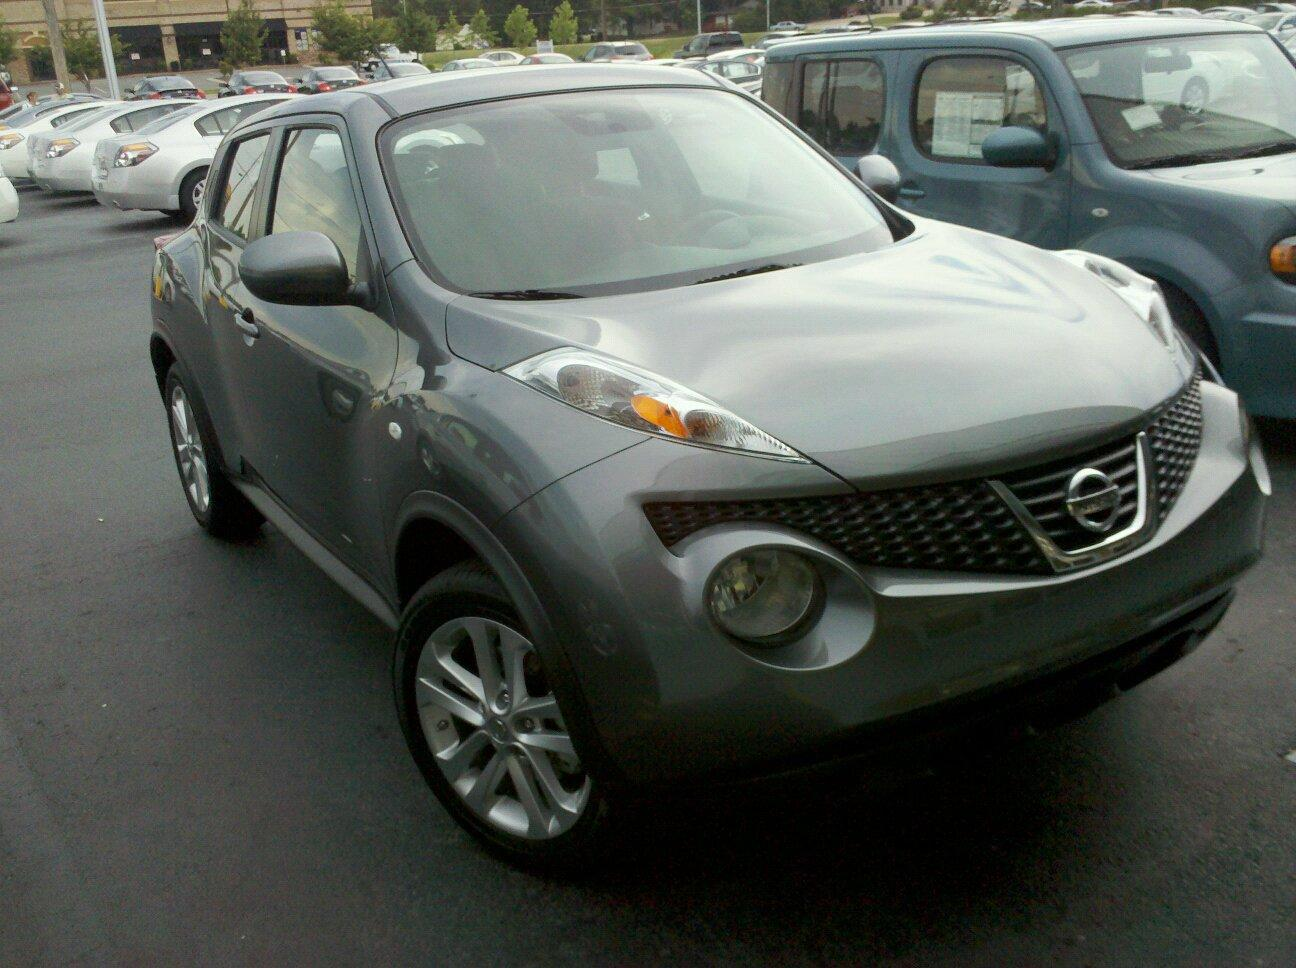 anthony870's 2011 Nissan JUKE